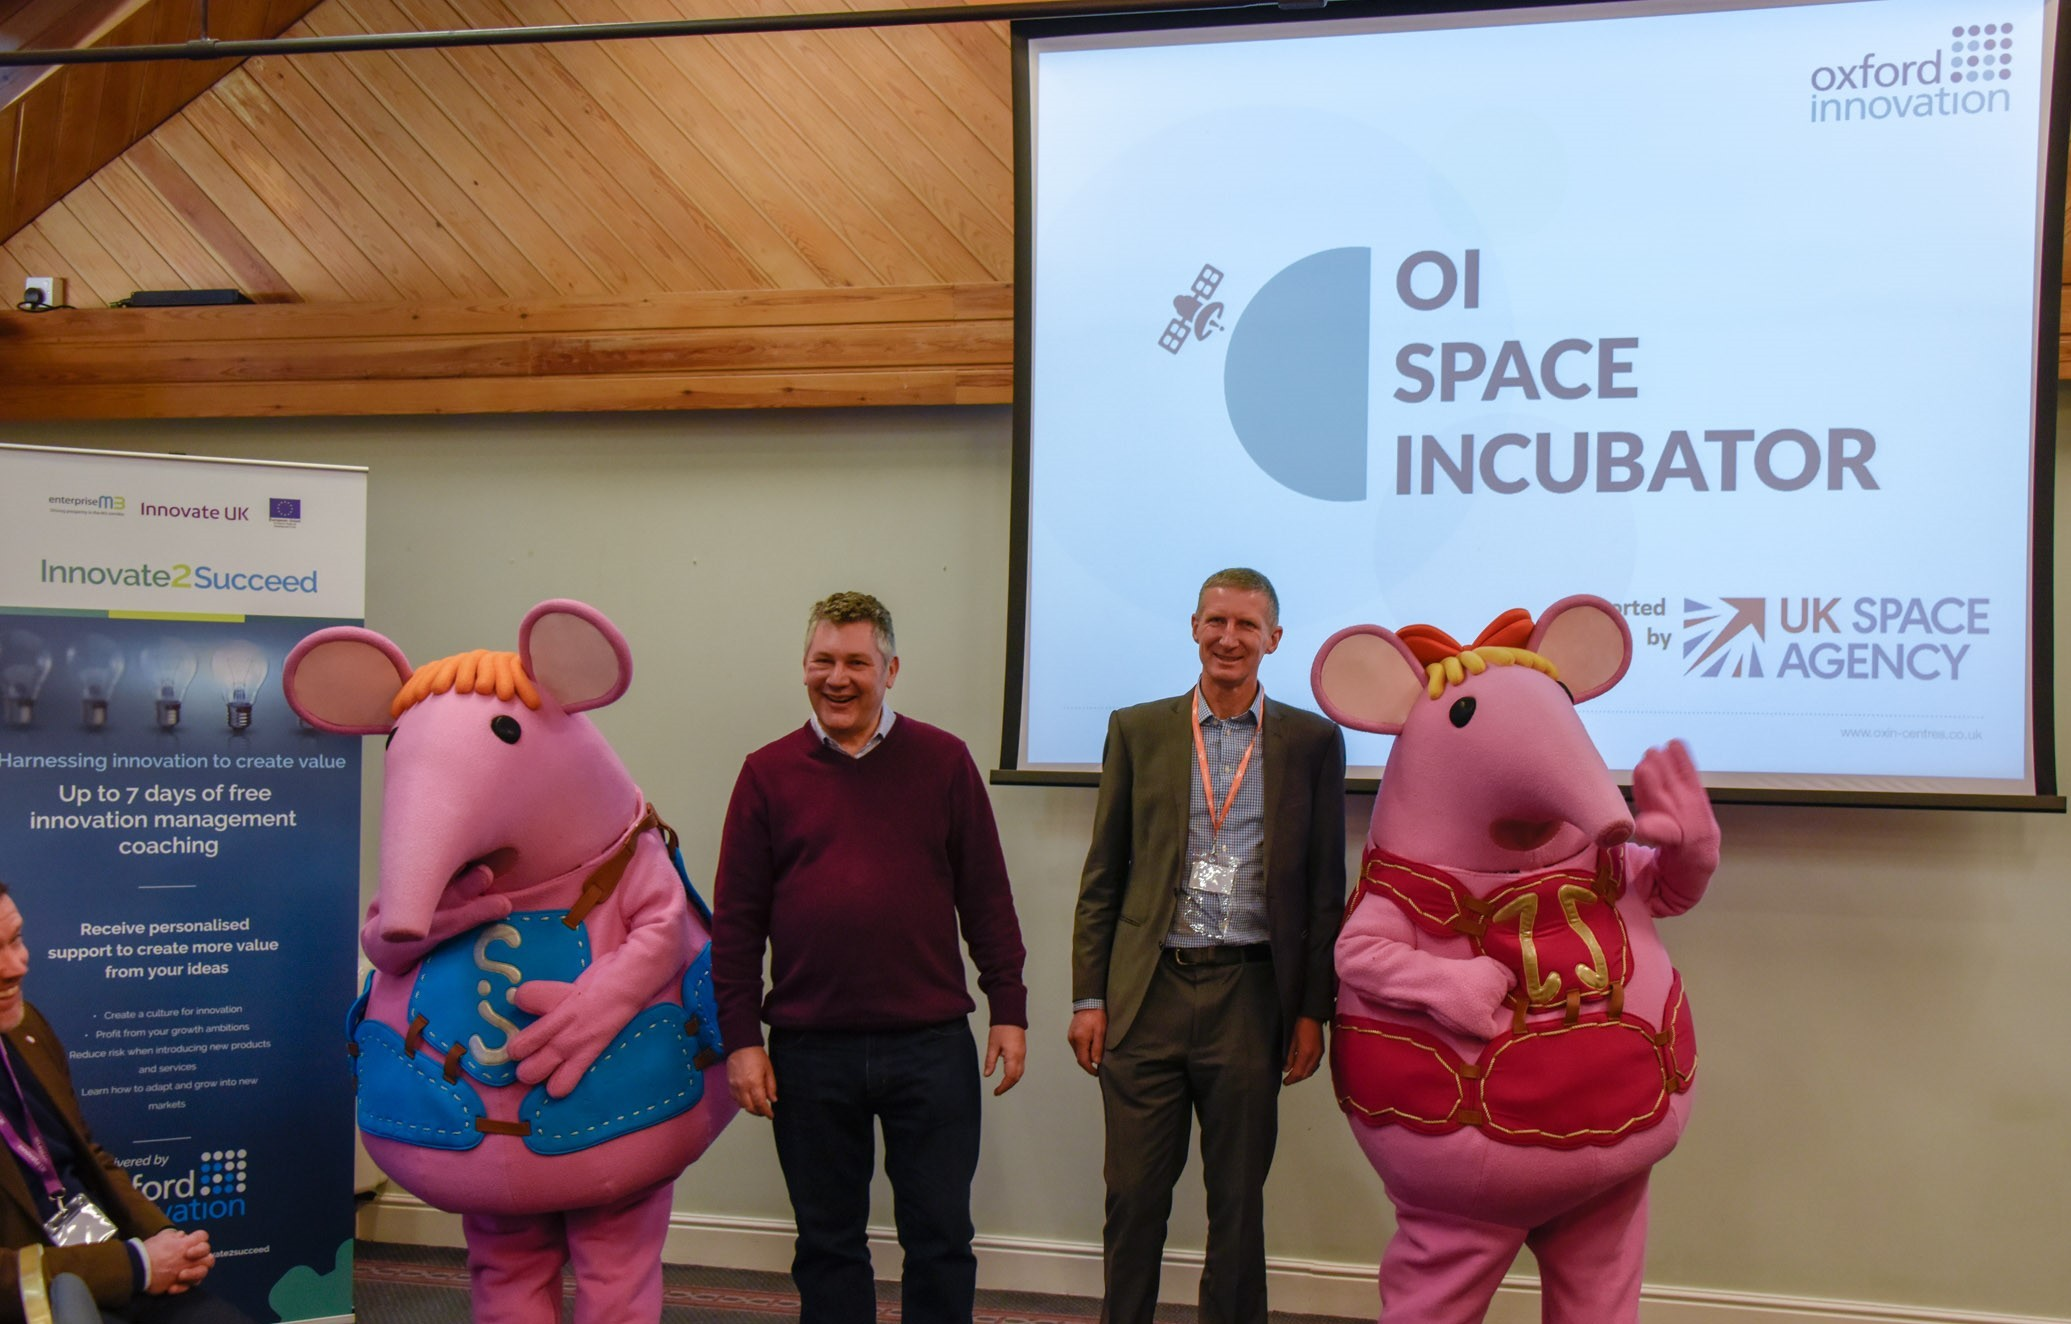 (From left to right) Oxford Innovation's Richard May with Mark Stileman, the Thought Leadership and Bid Manager for Ordnance Survey at the launch of the programme